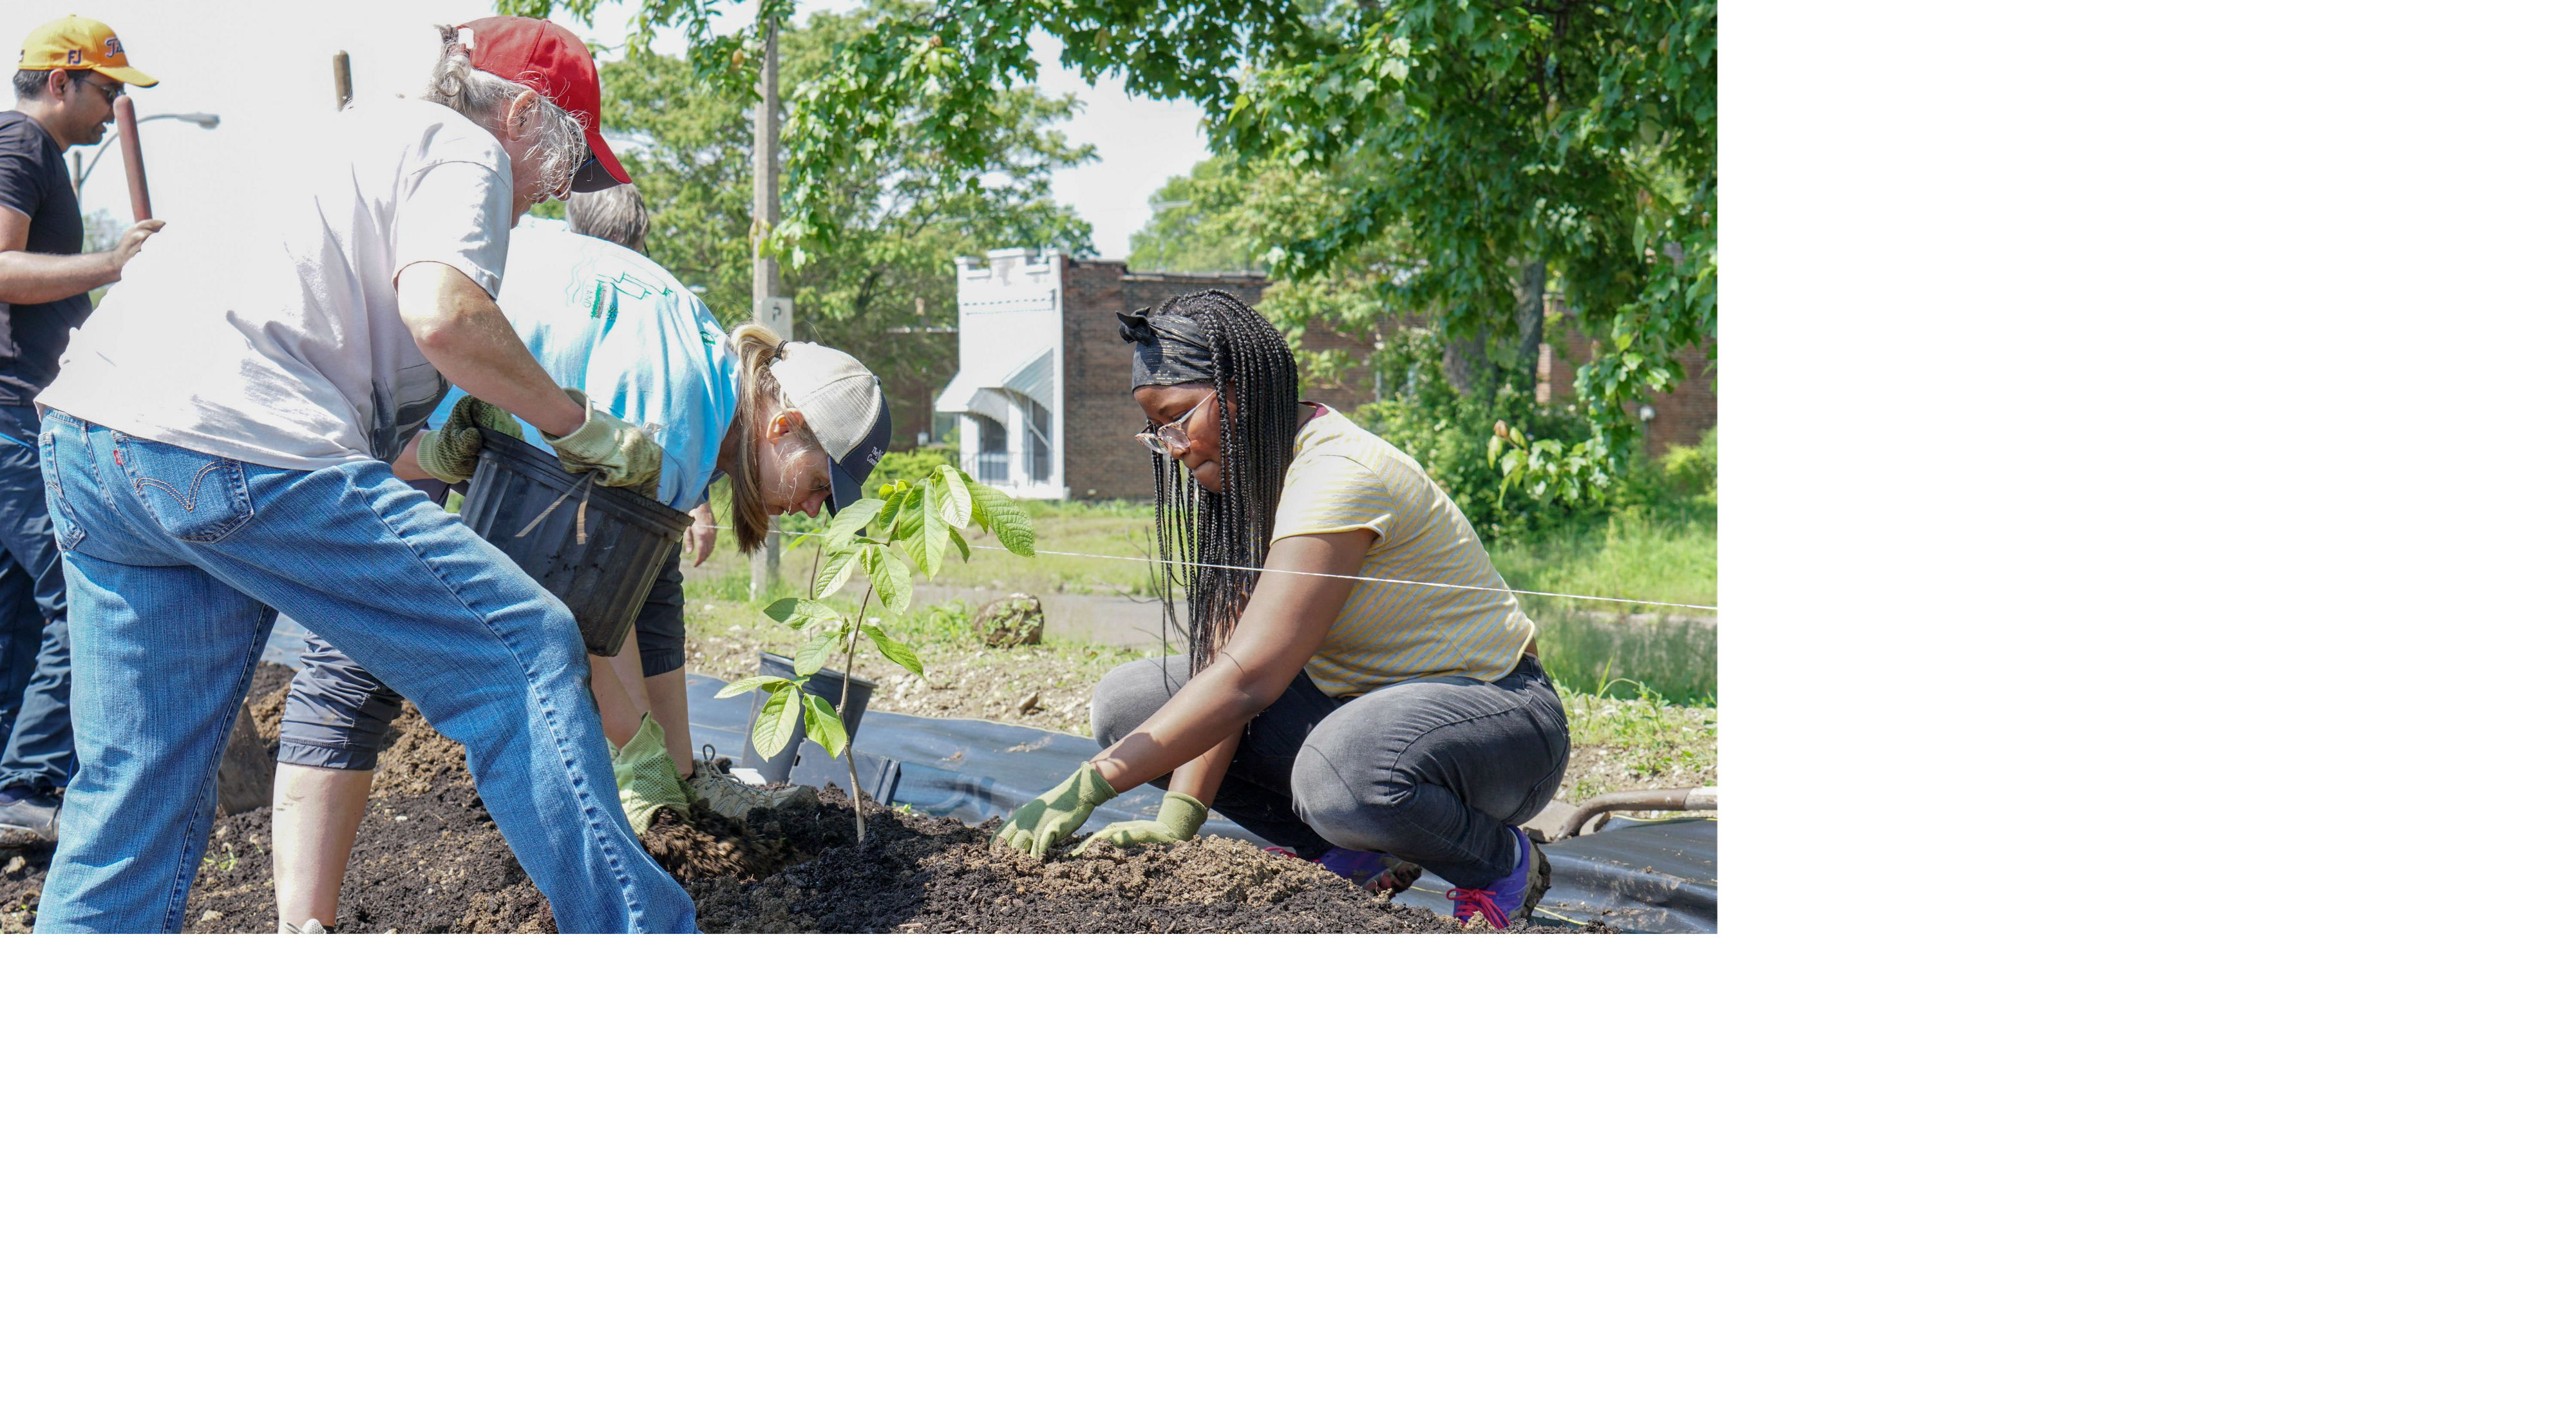 Small group of people planting trees in an urban garden.